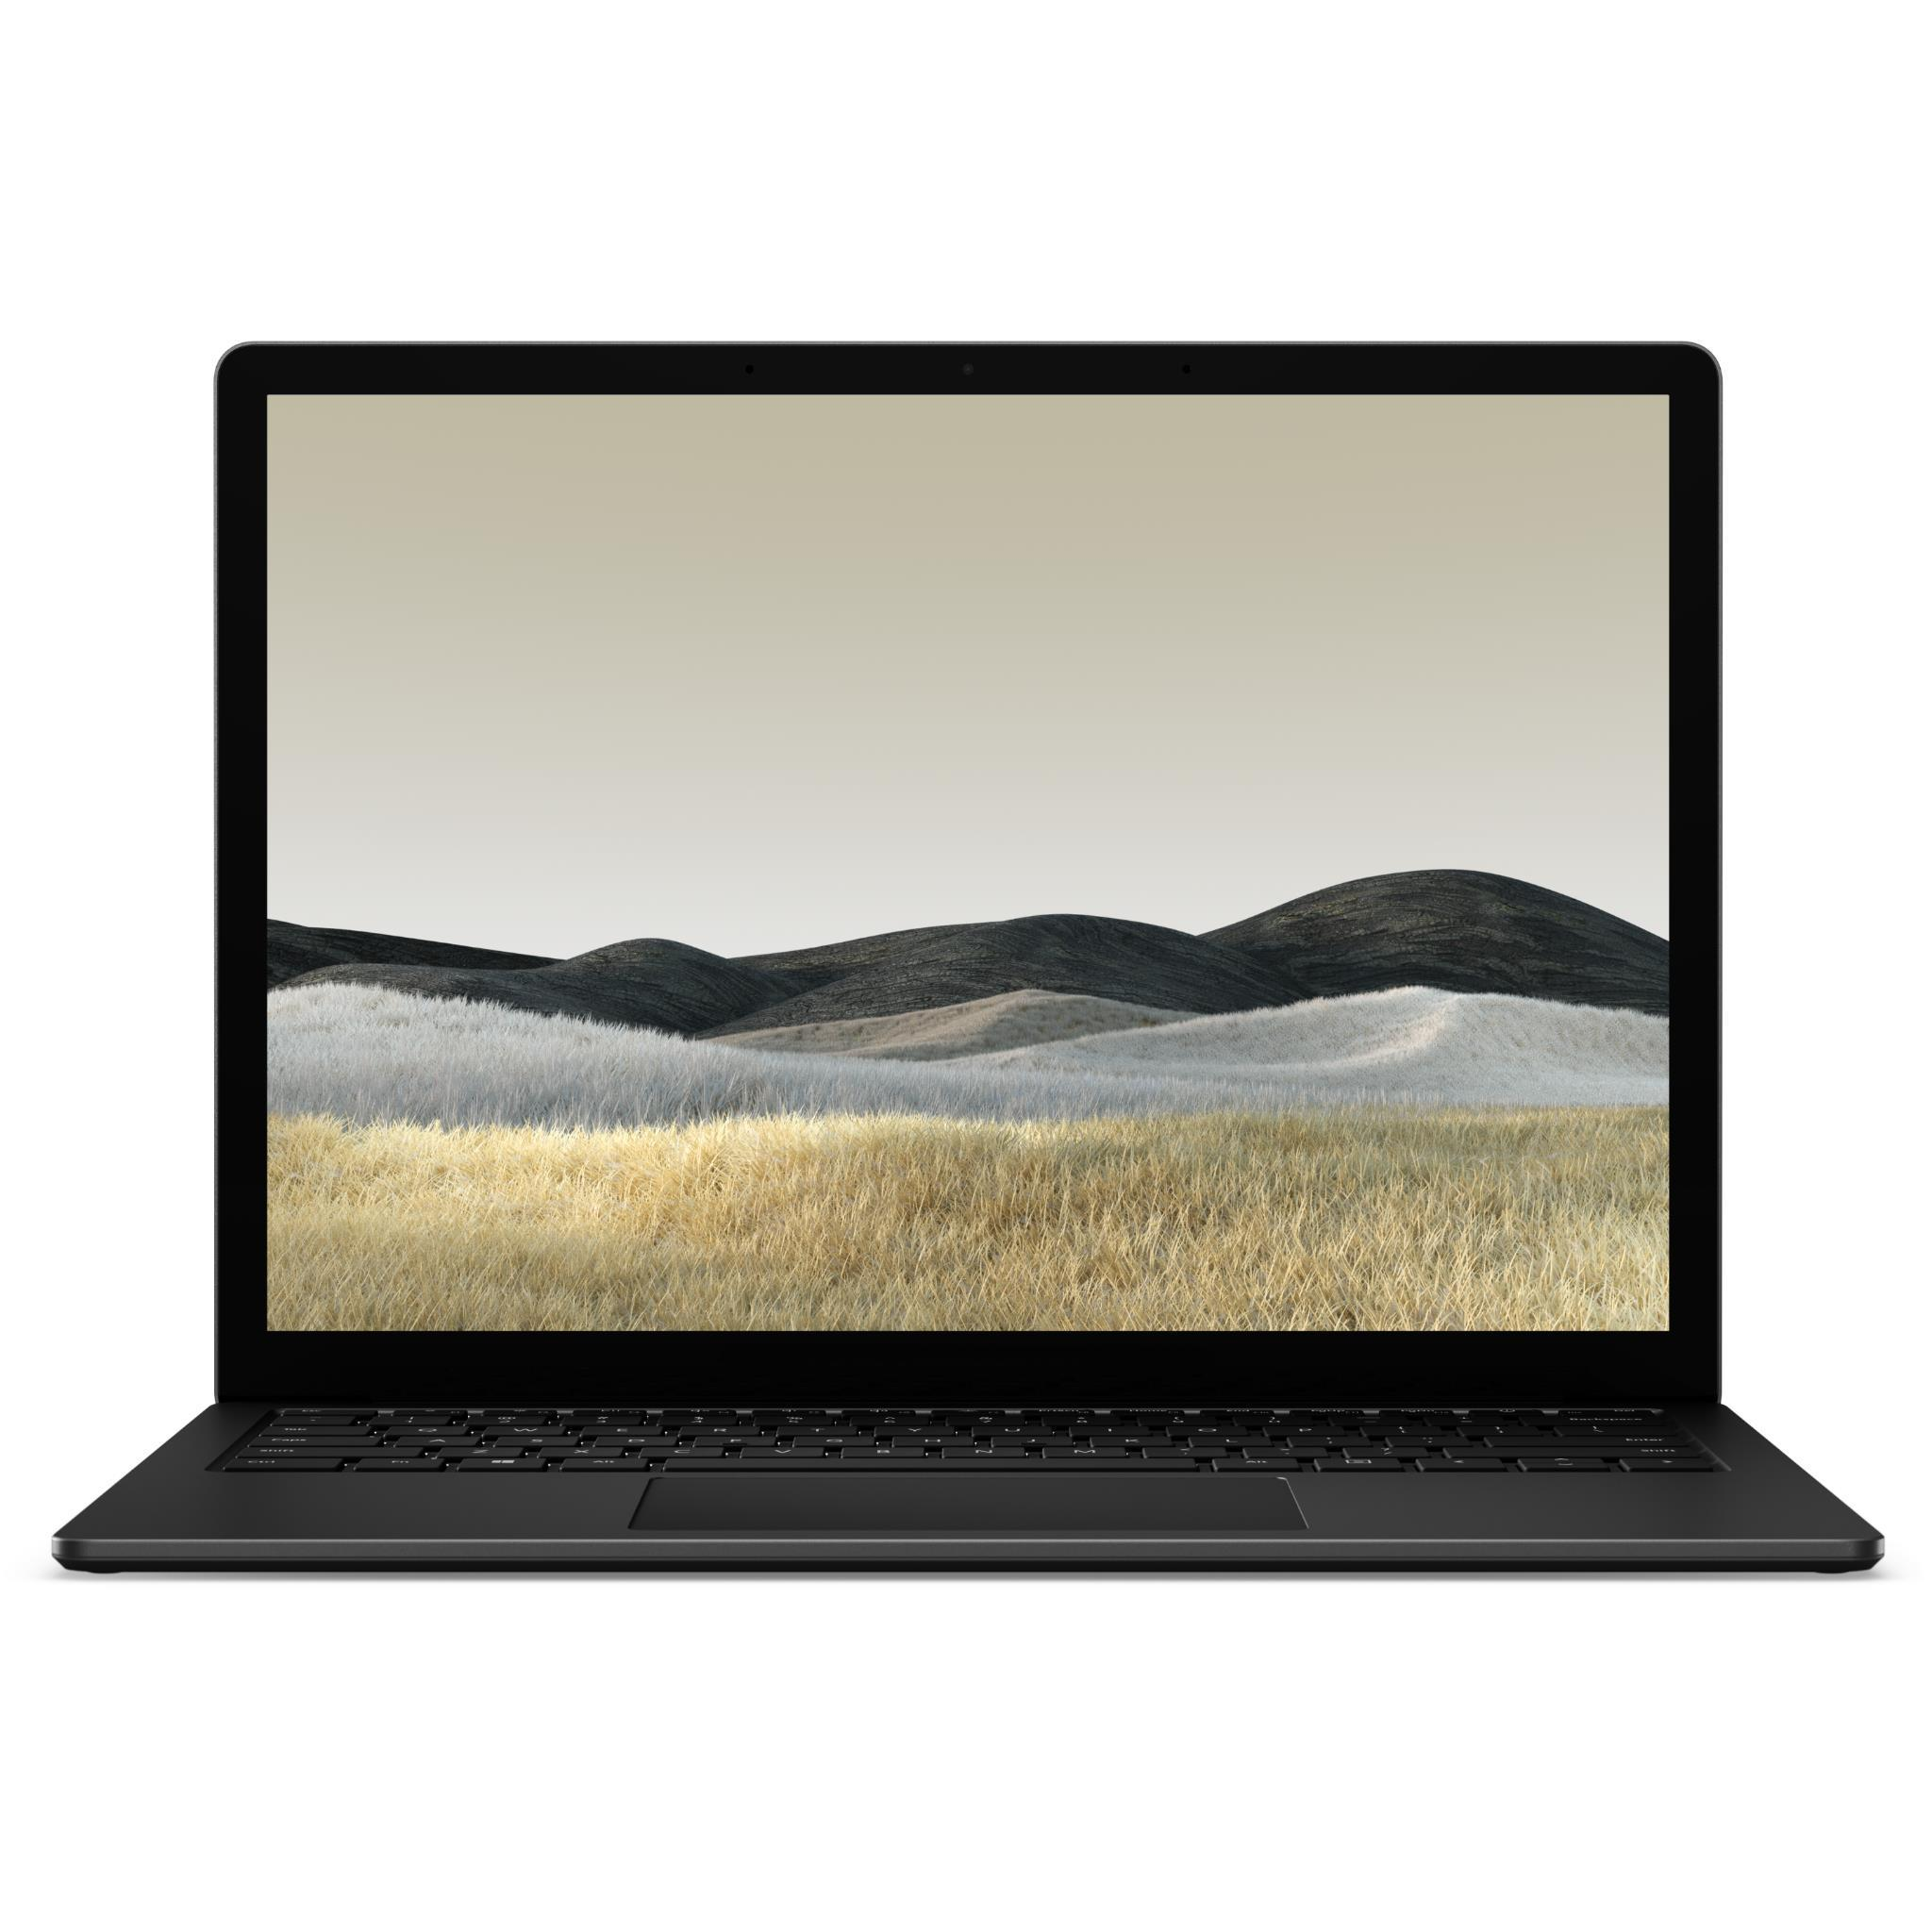 Microsoft Surface Laptop 3 13.5″ i7 256GB (Black)